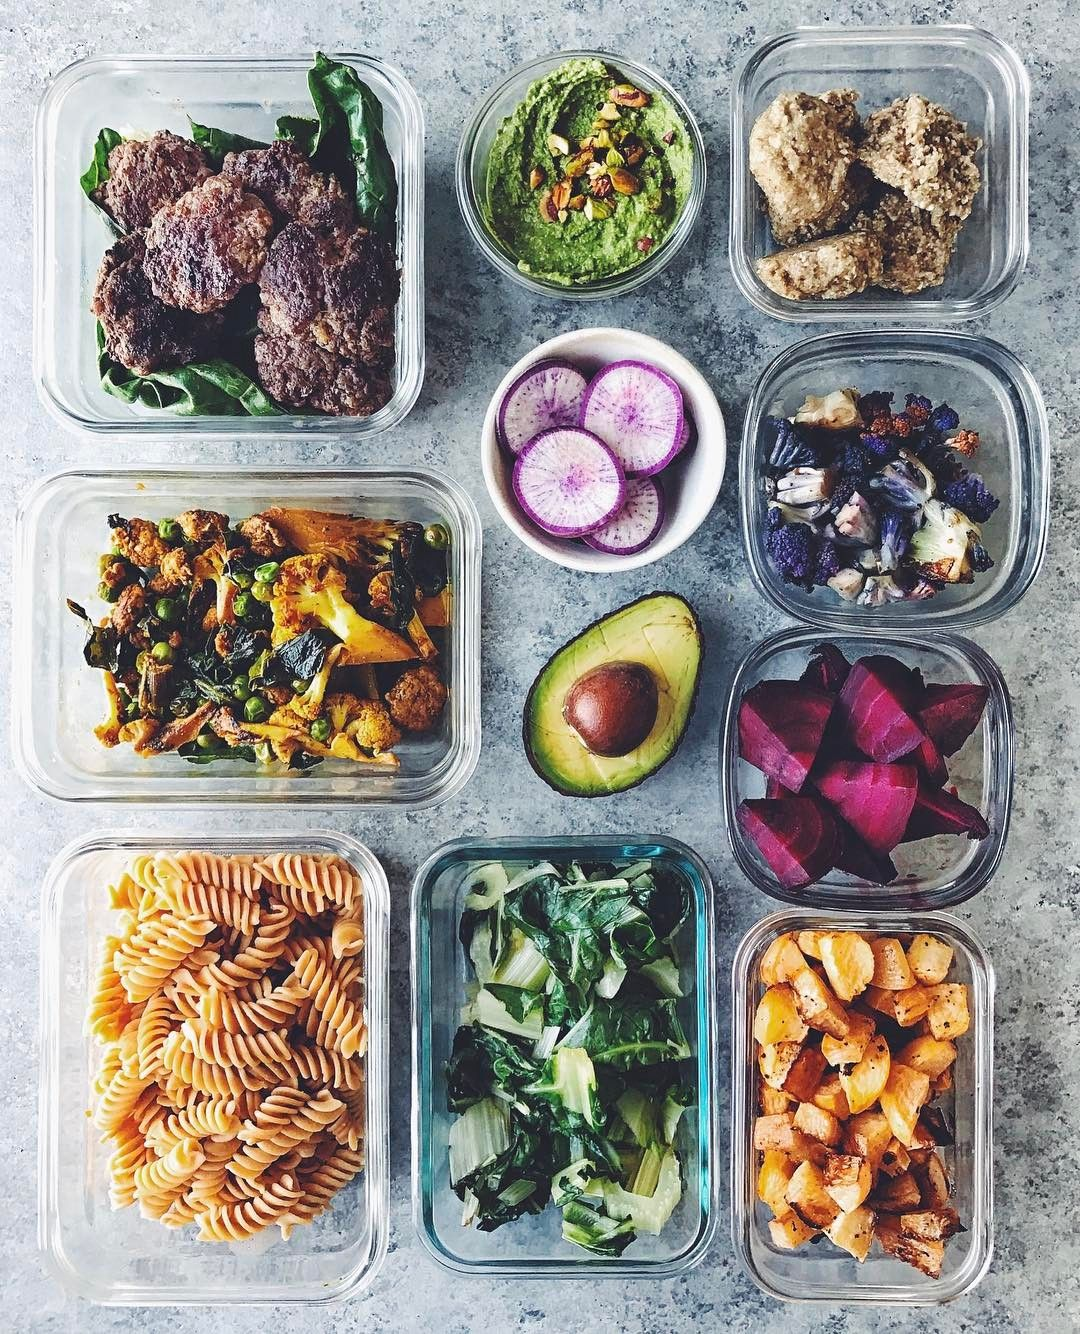 Meal Prep For The Week This Week S Prep Is A Little Smaller As I M Heading To Ct Nyc This Week Yess Meal Prep For The Week Healthy Healthy Snacks